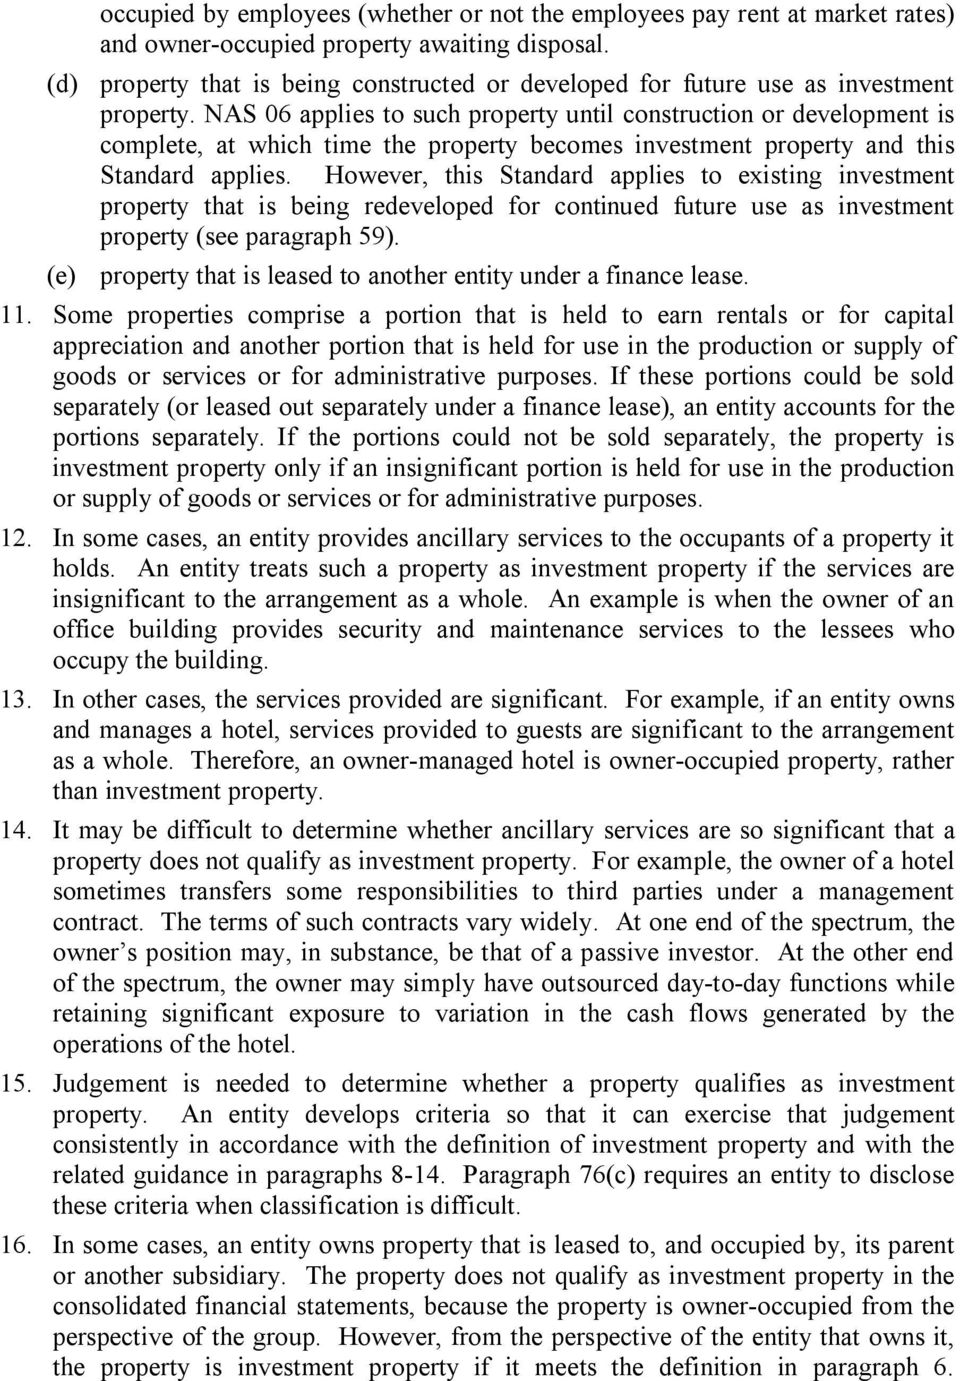 NAS 06 applies to such property until construction or development is complete, at which time the property becomes investment property and this Standard applies.